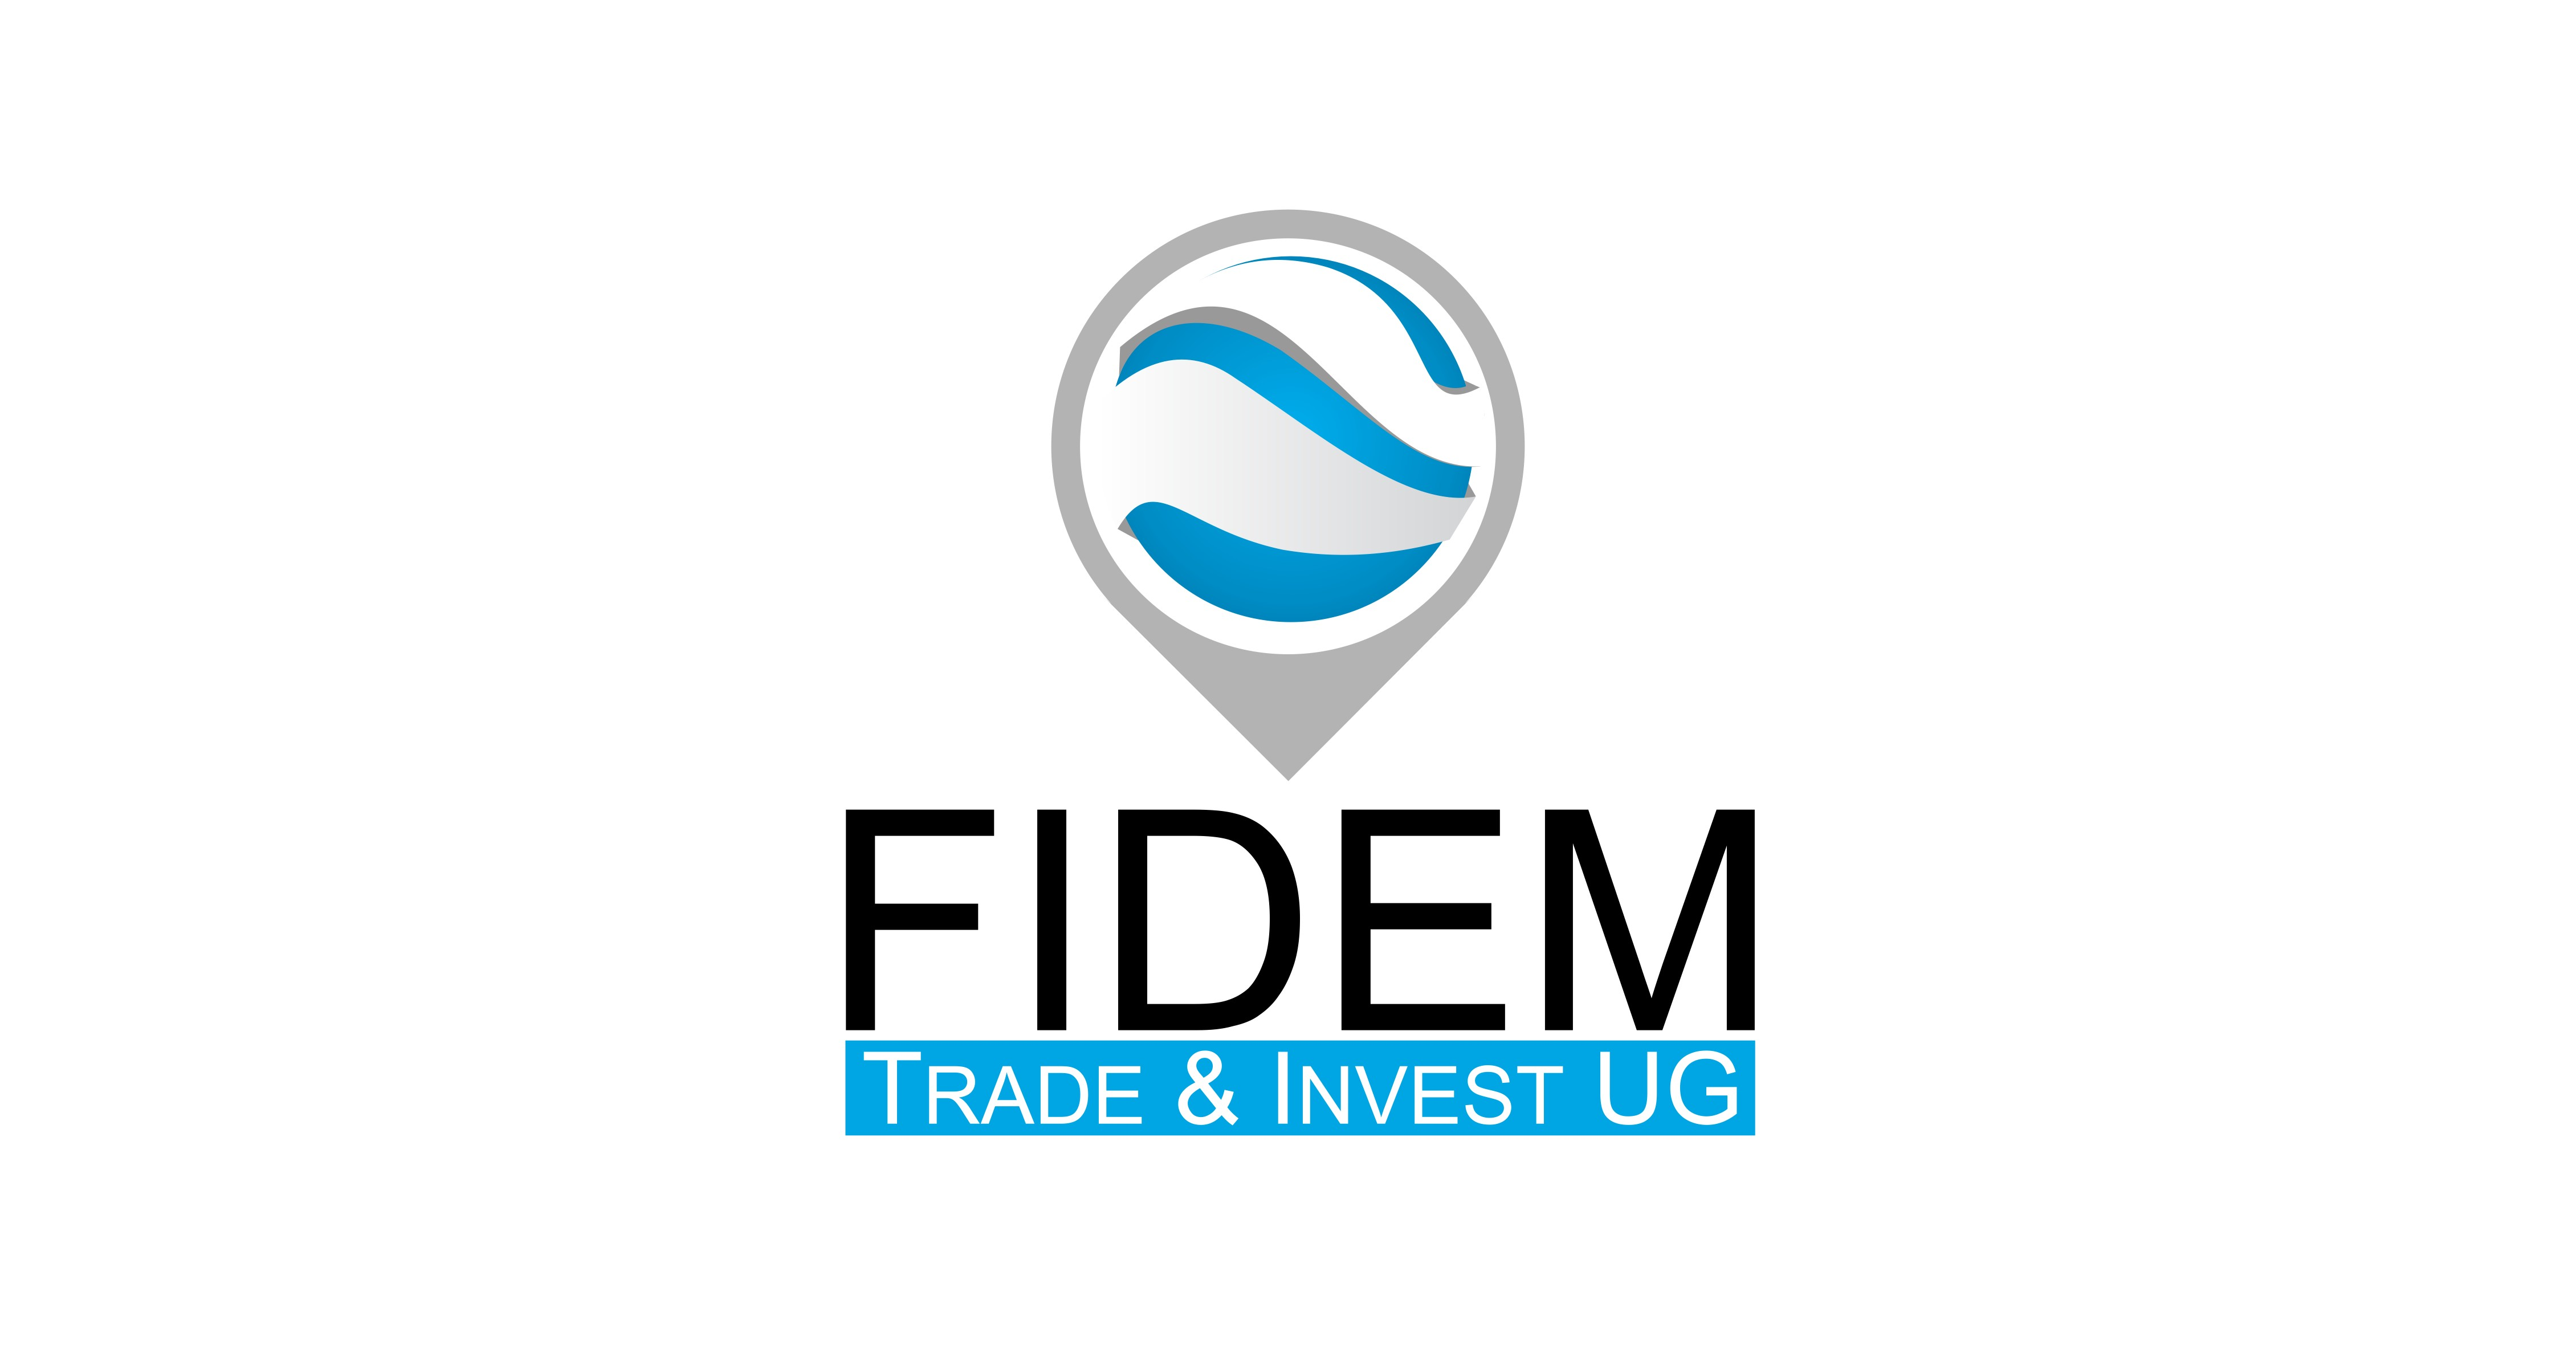 Logo Design by Crispin Jr Vasquez - Entry No. 522 in the Logo Design Contest Professional Logo Design for FIDEM Trade & Invest UG.